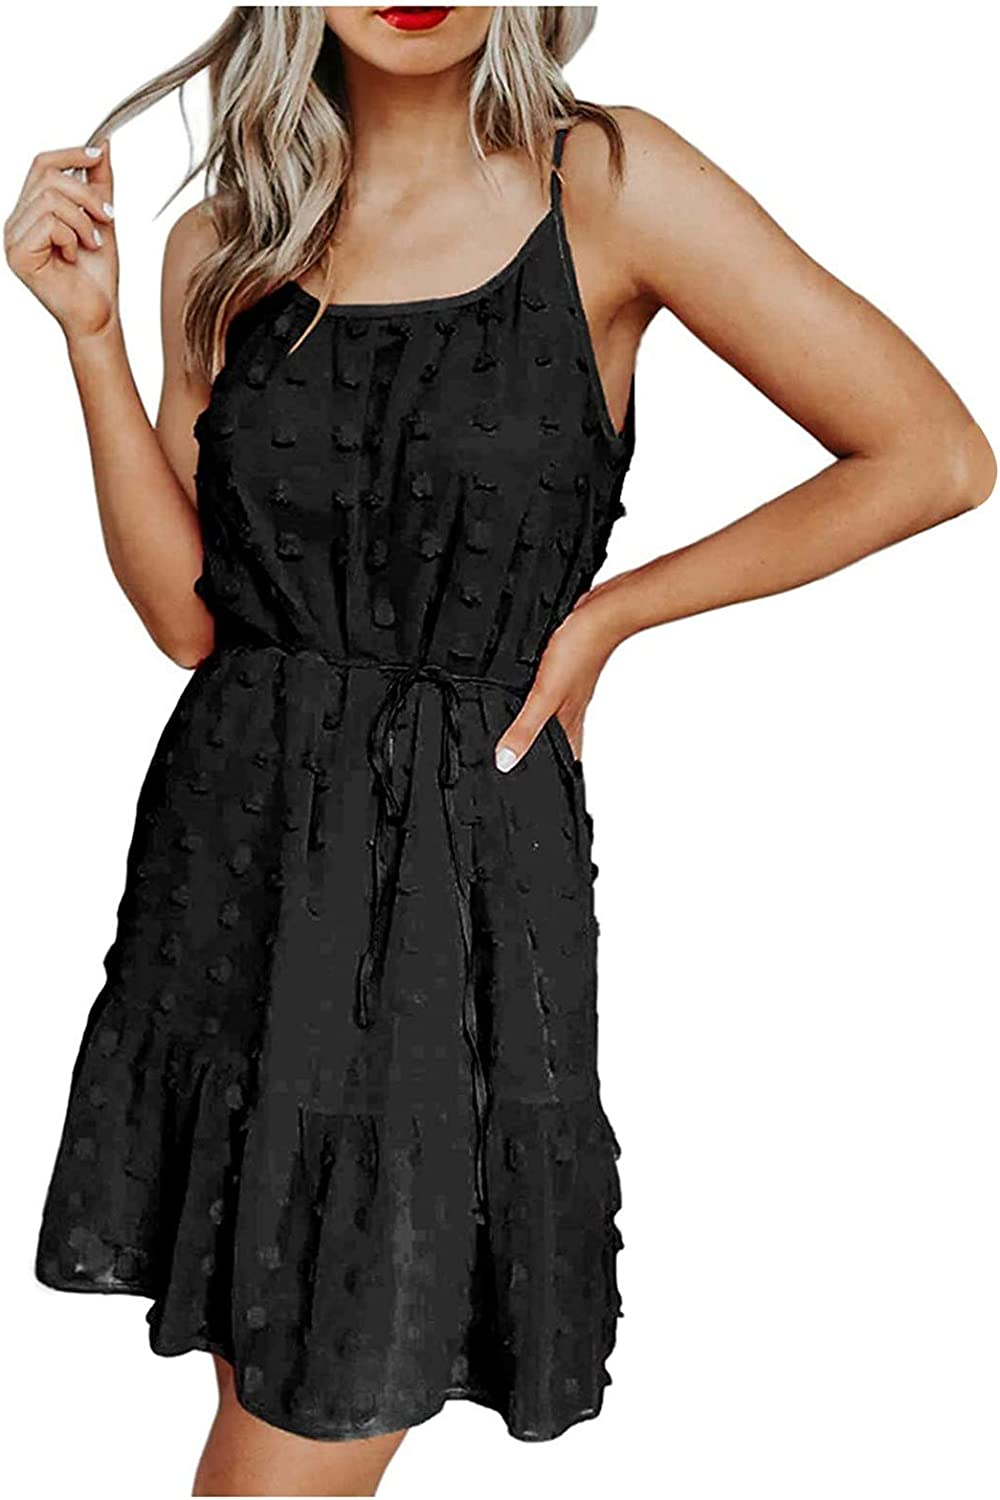 Summer Beach Dress Ranking TOP15 Womens Limited Special Price Casual Spaghetti Fitted V-Neck S Loose